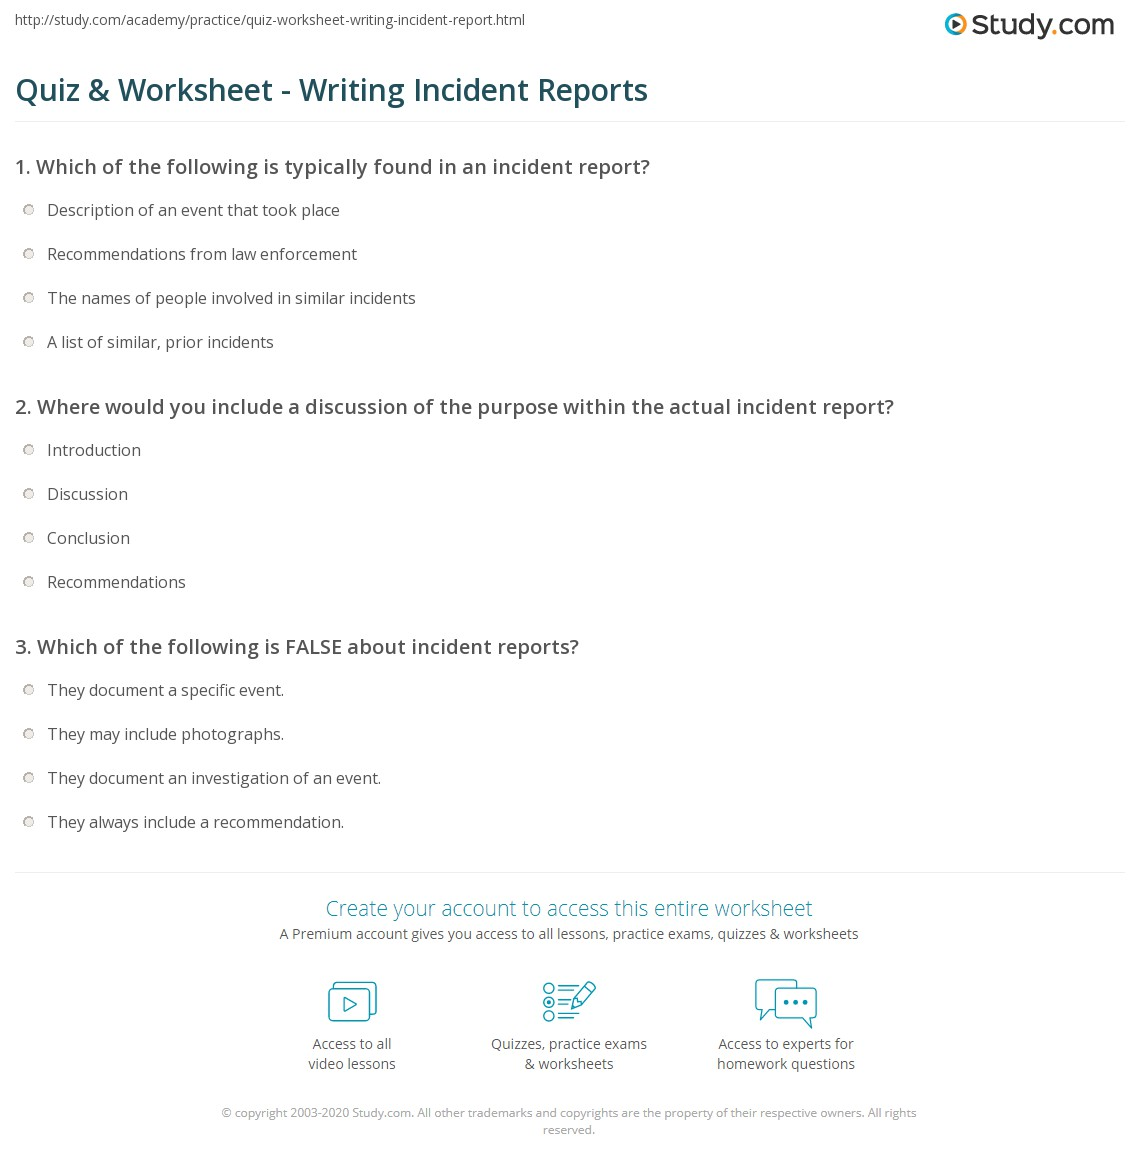 Exceptional Print How To Write Incident Reports: Purpose, Structure U0026 Content Worksheet Home Design Ideas